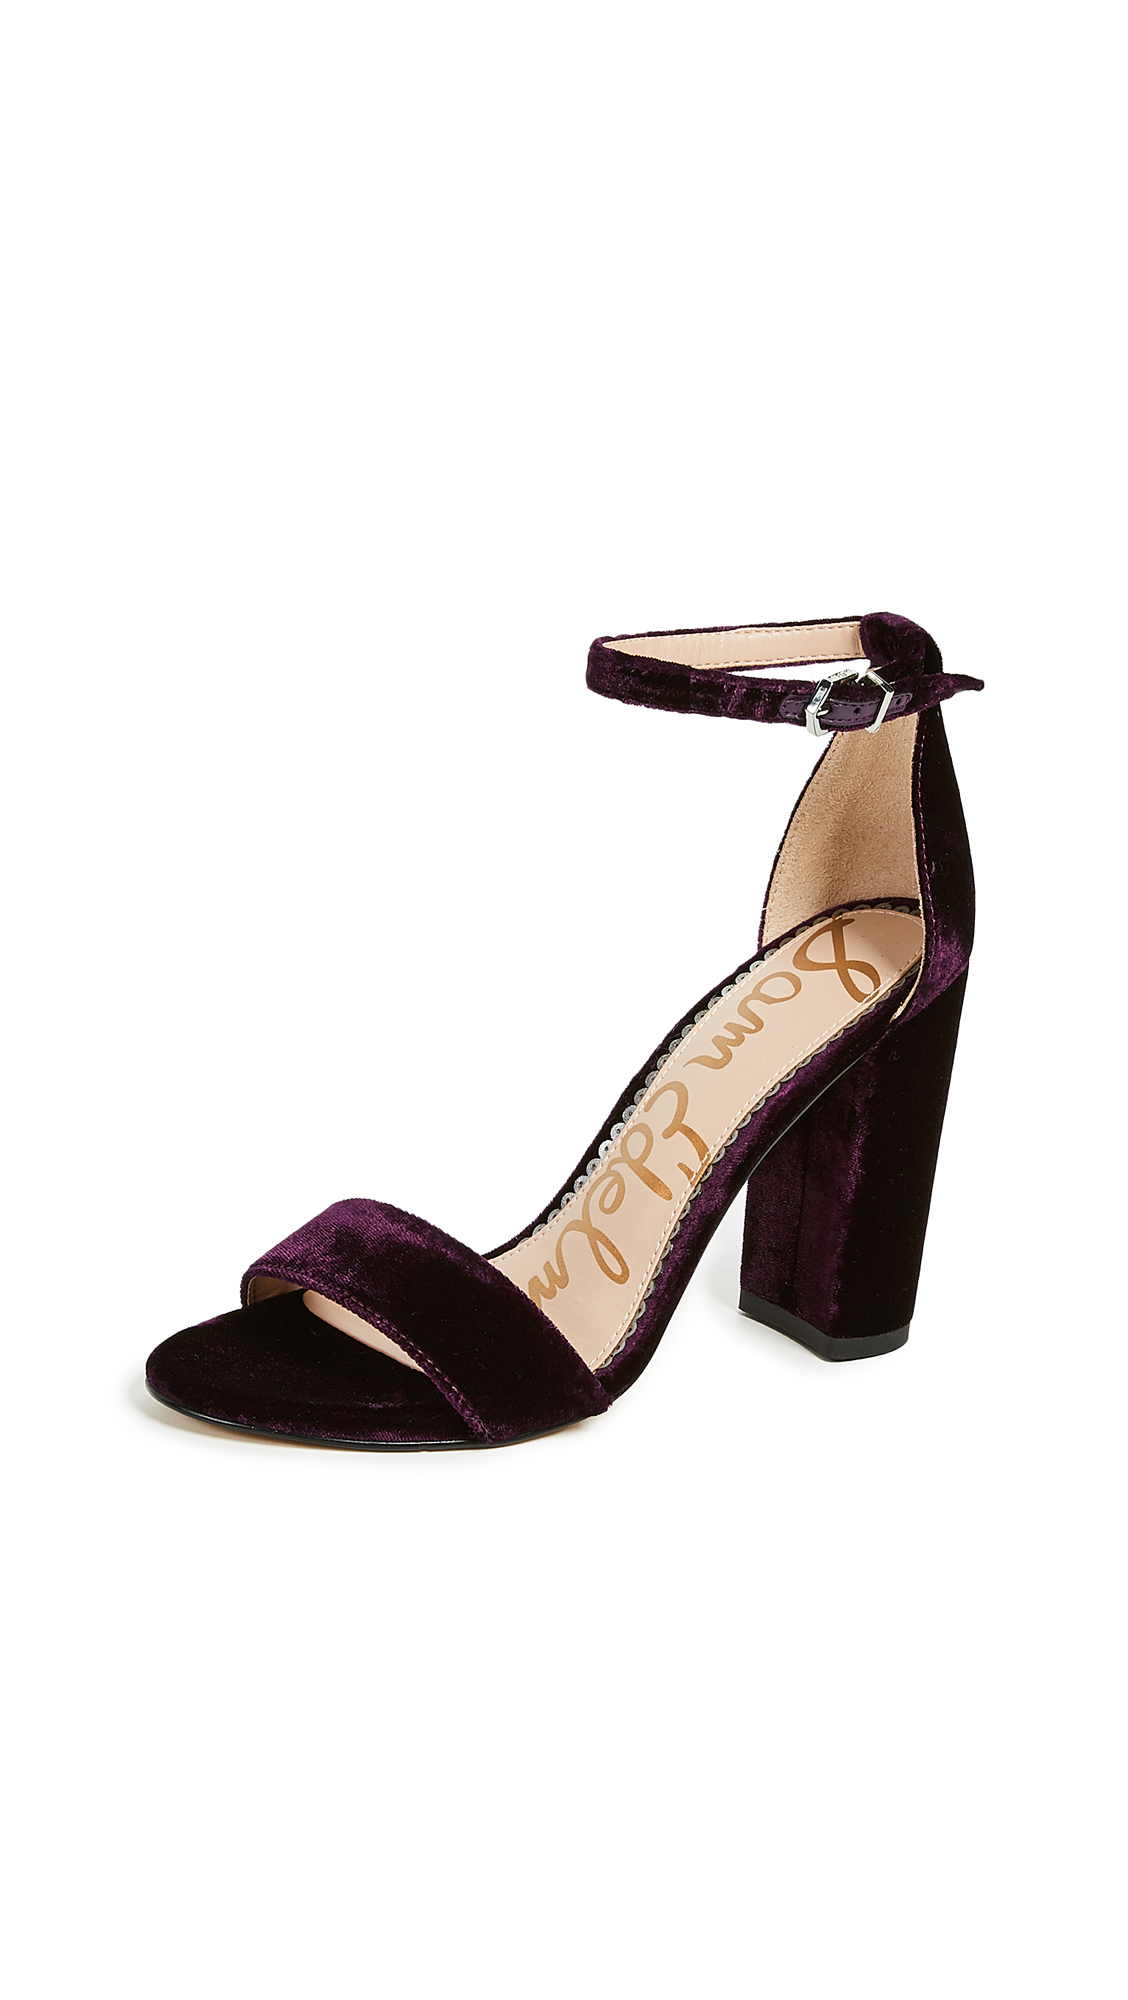 Sam Edelman Yaro Sandals - Raspberry Wine